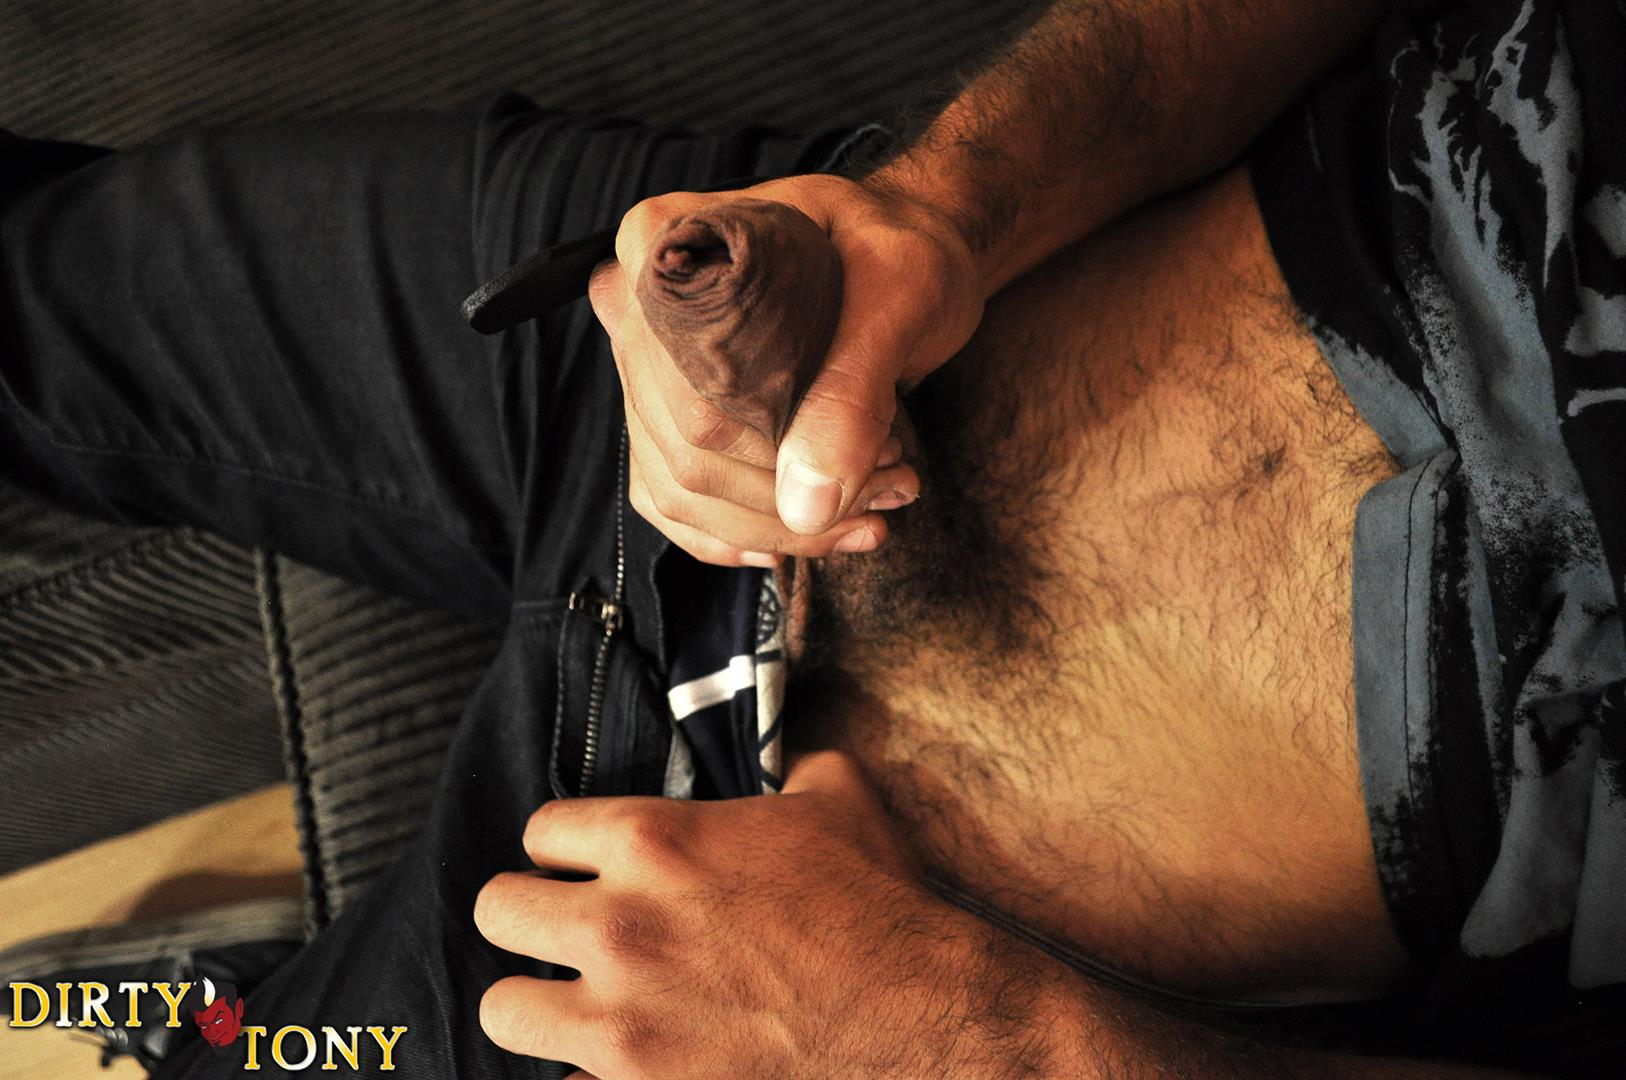 Dirty-Tony-ALEX-CANON-Hairy-Muscle-Guy-Jerking-A-Huge-Uncut-Cock-Amateur-Gay-Porn-03 Amateur Hairy Muscle Stud Playing With His Big Uncut Cock